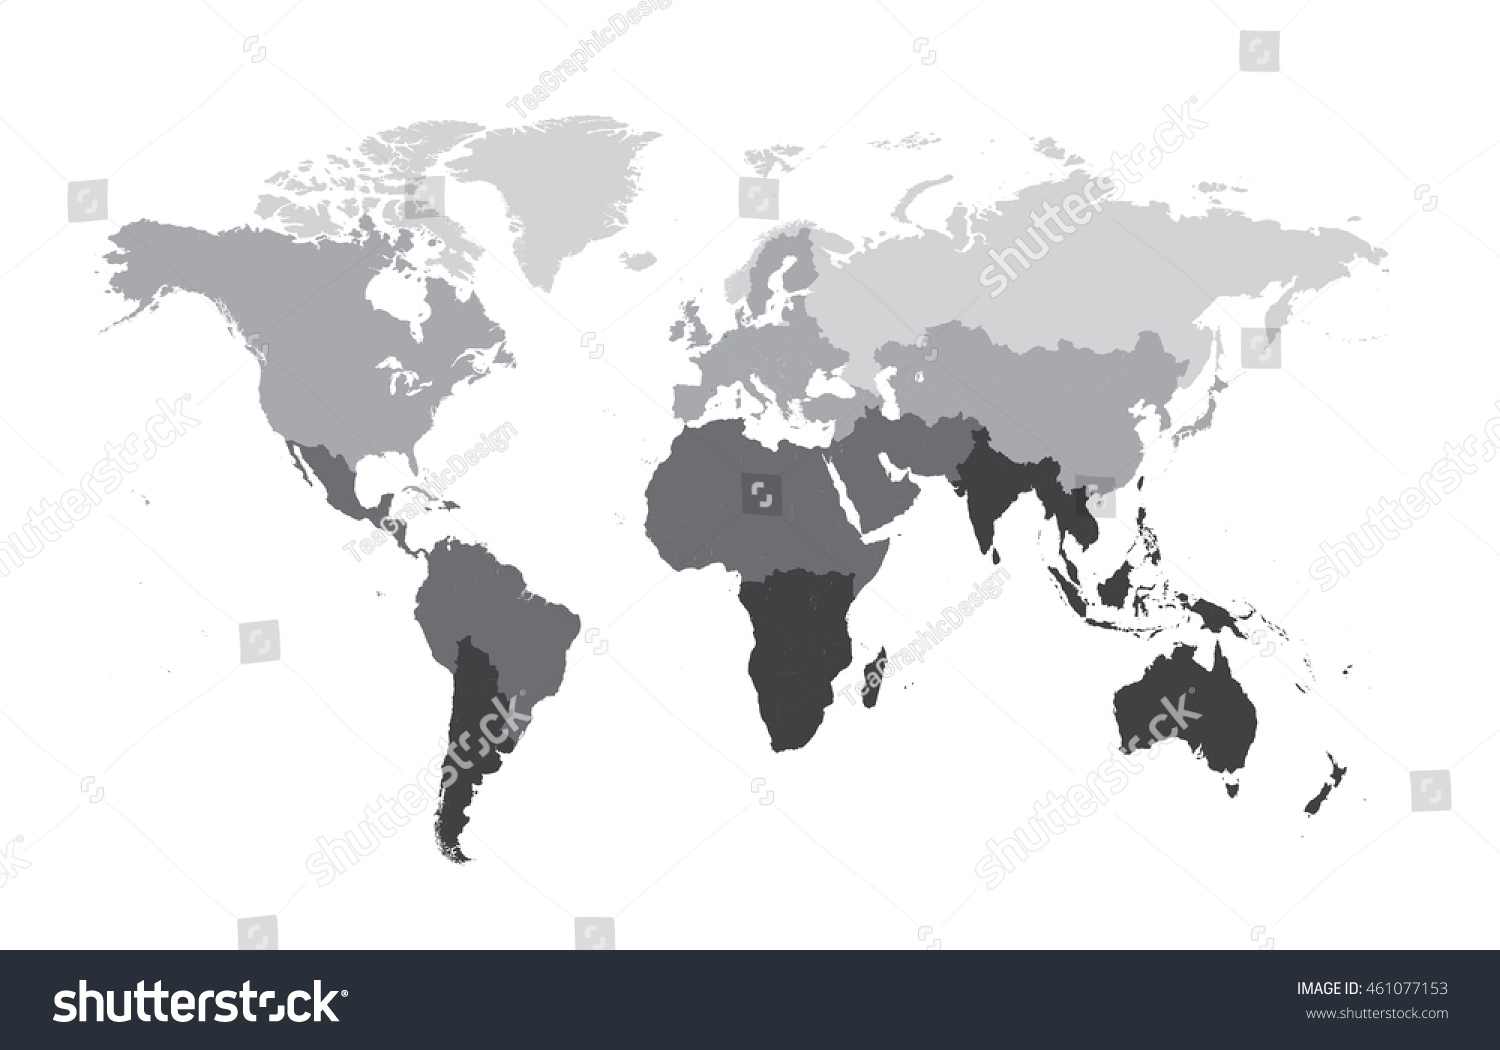 World map flat vector gray color stock vector 461077153 shutterstock world map flat vector gray color sciox Gallery